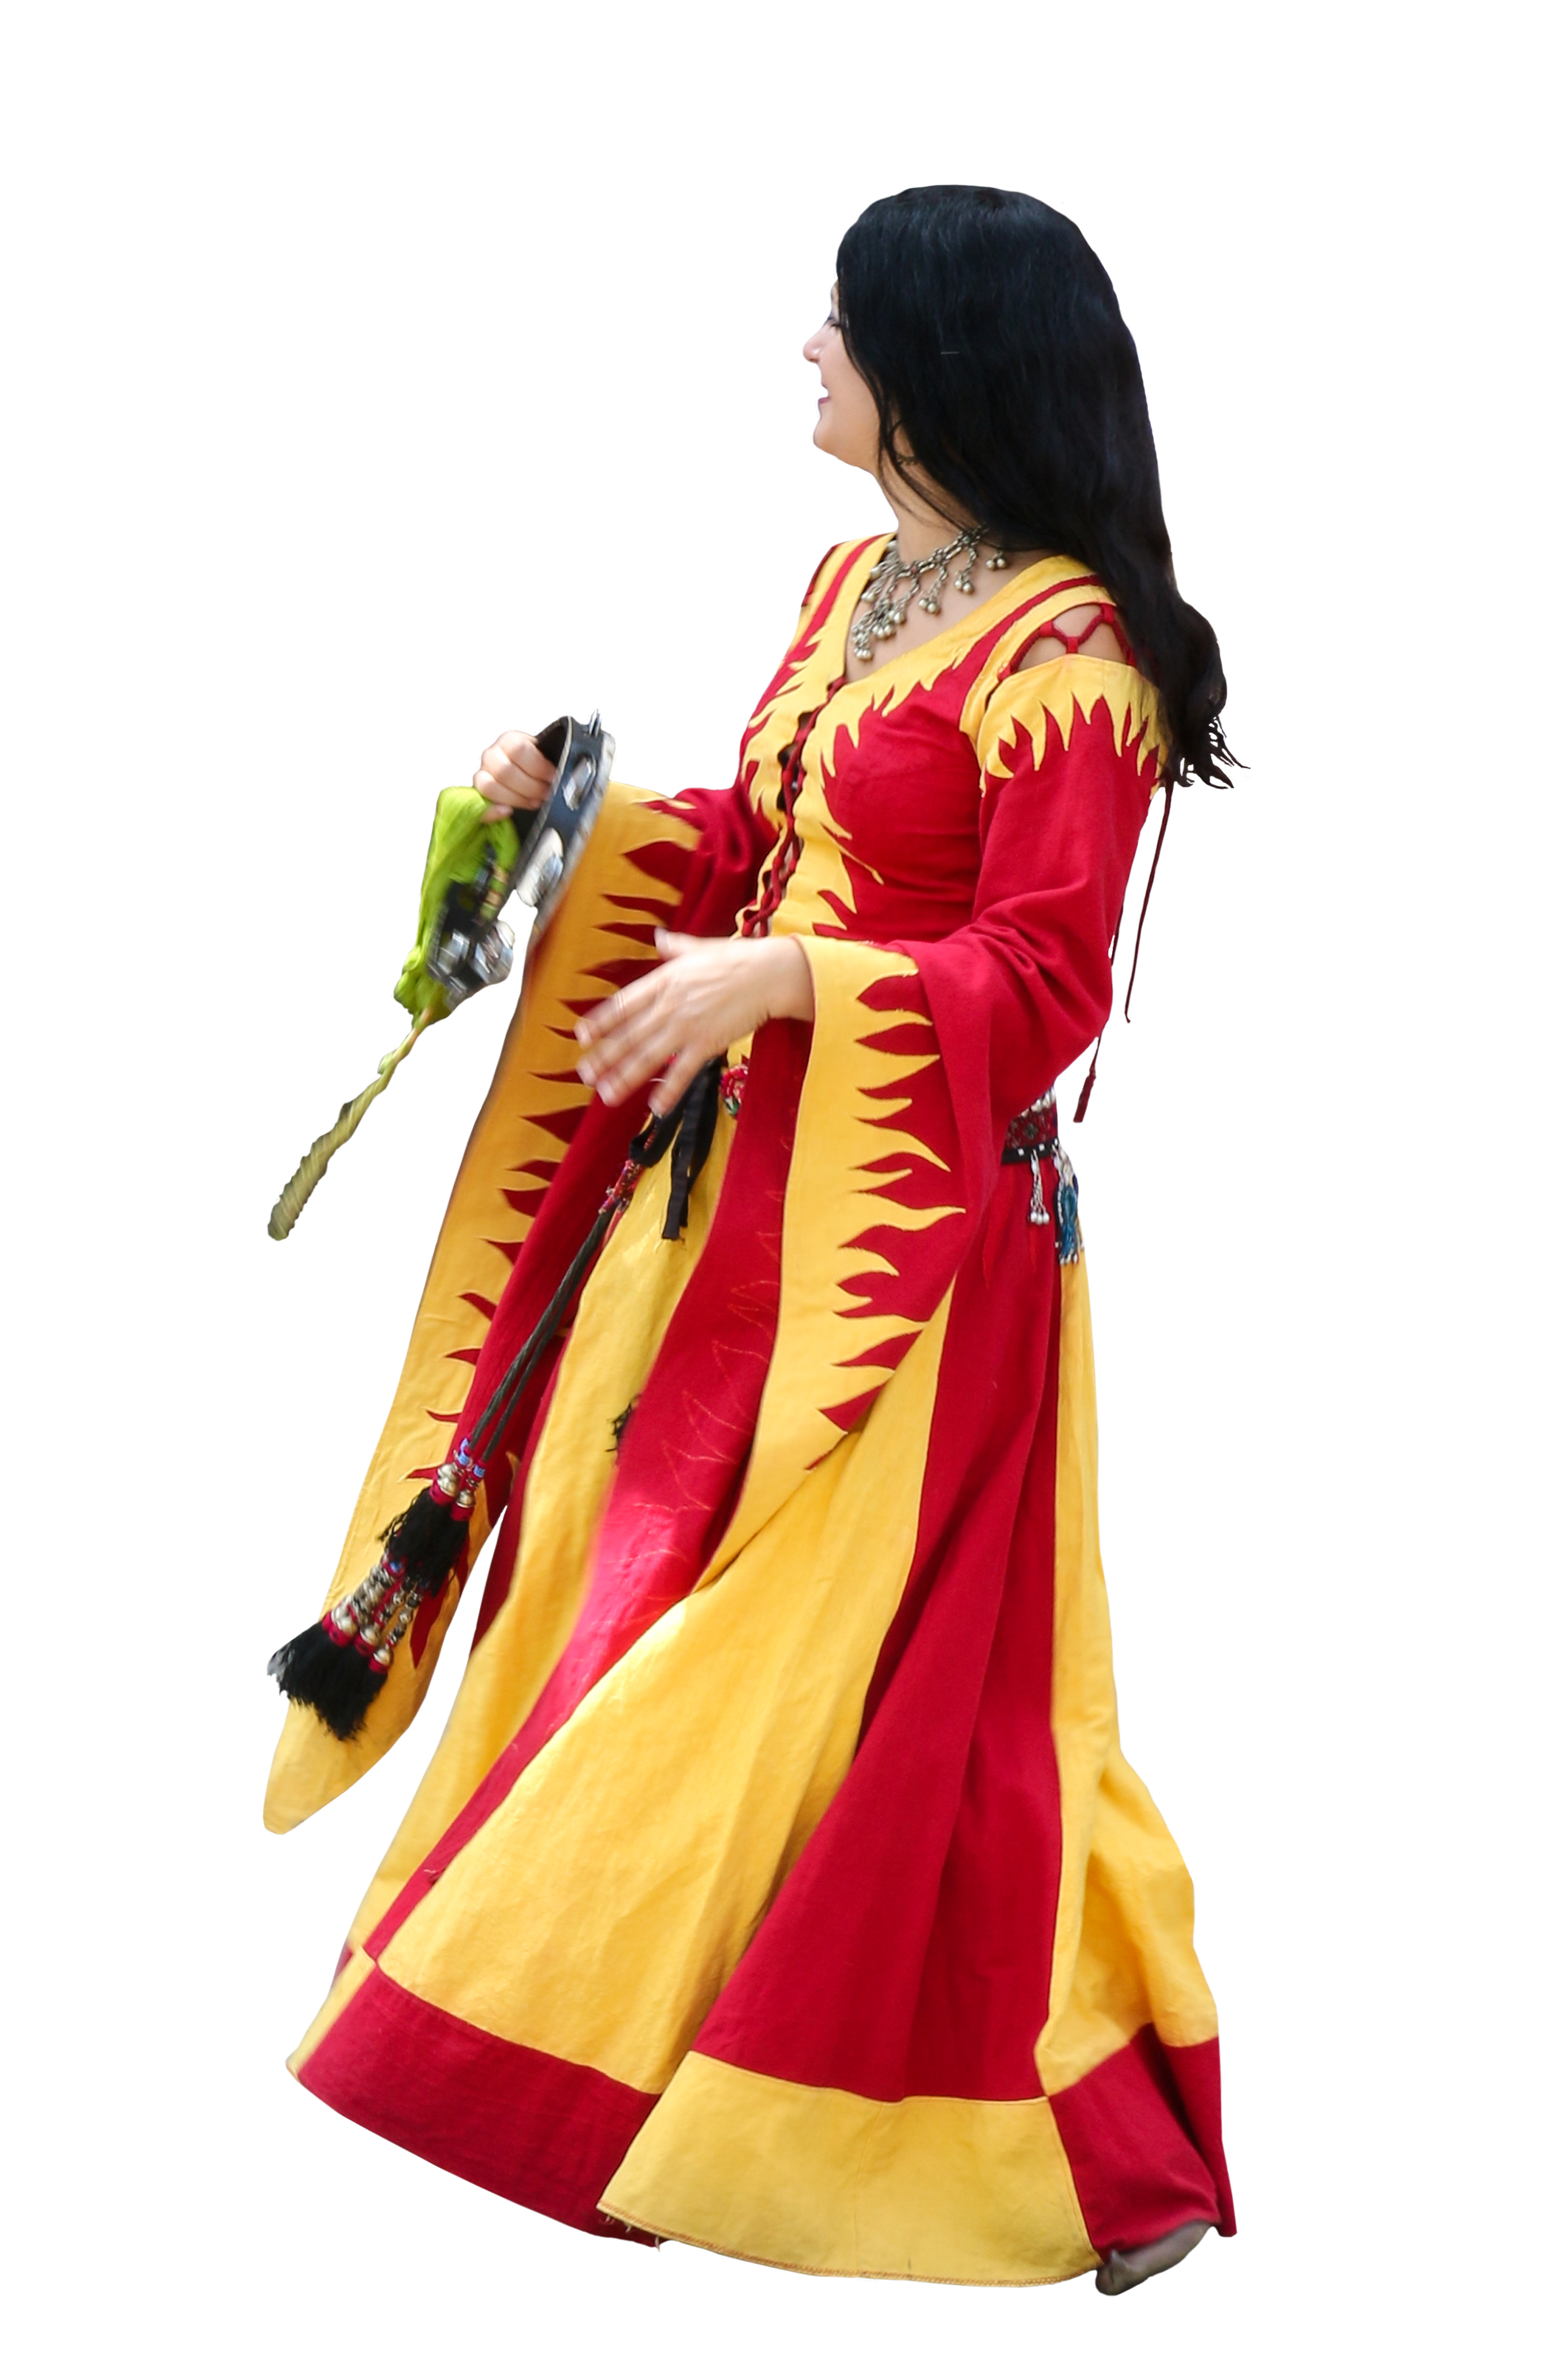 Woman PNG Image